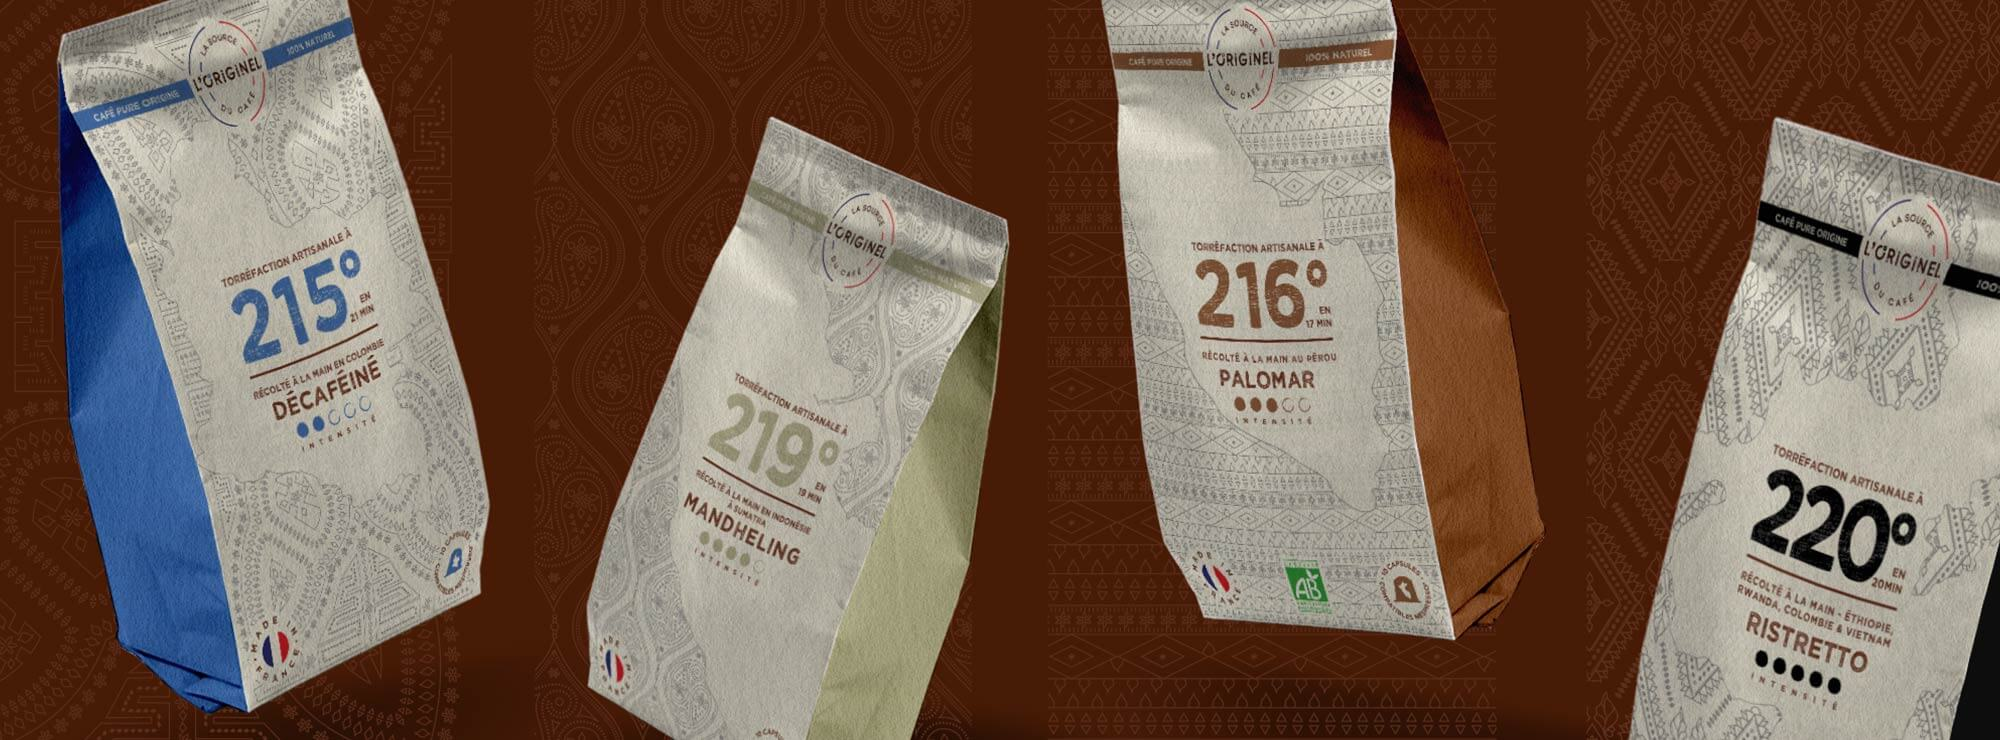 04 l originel packaging coffee capsule perou indonesie ristretto colombie pattern.jpg